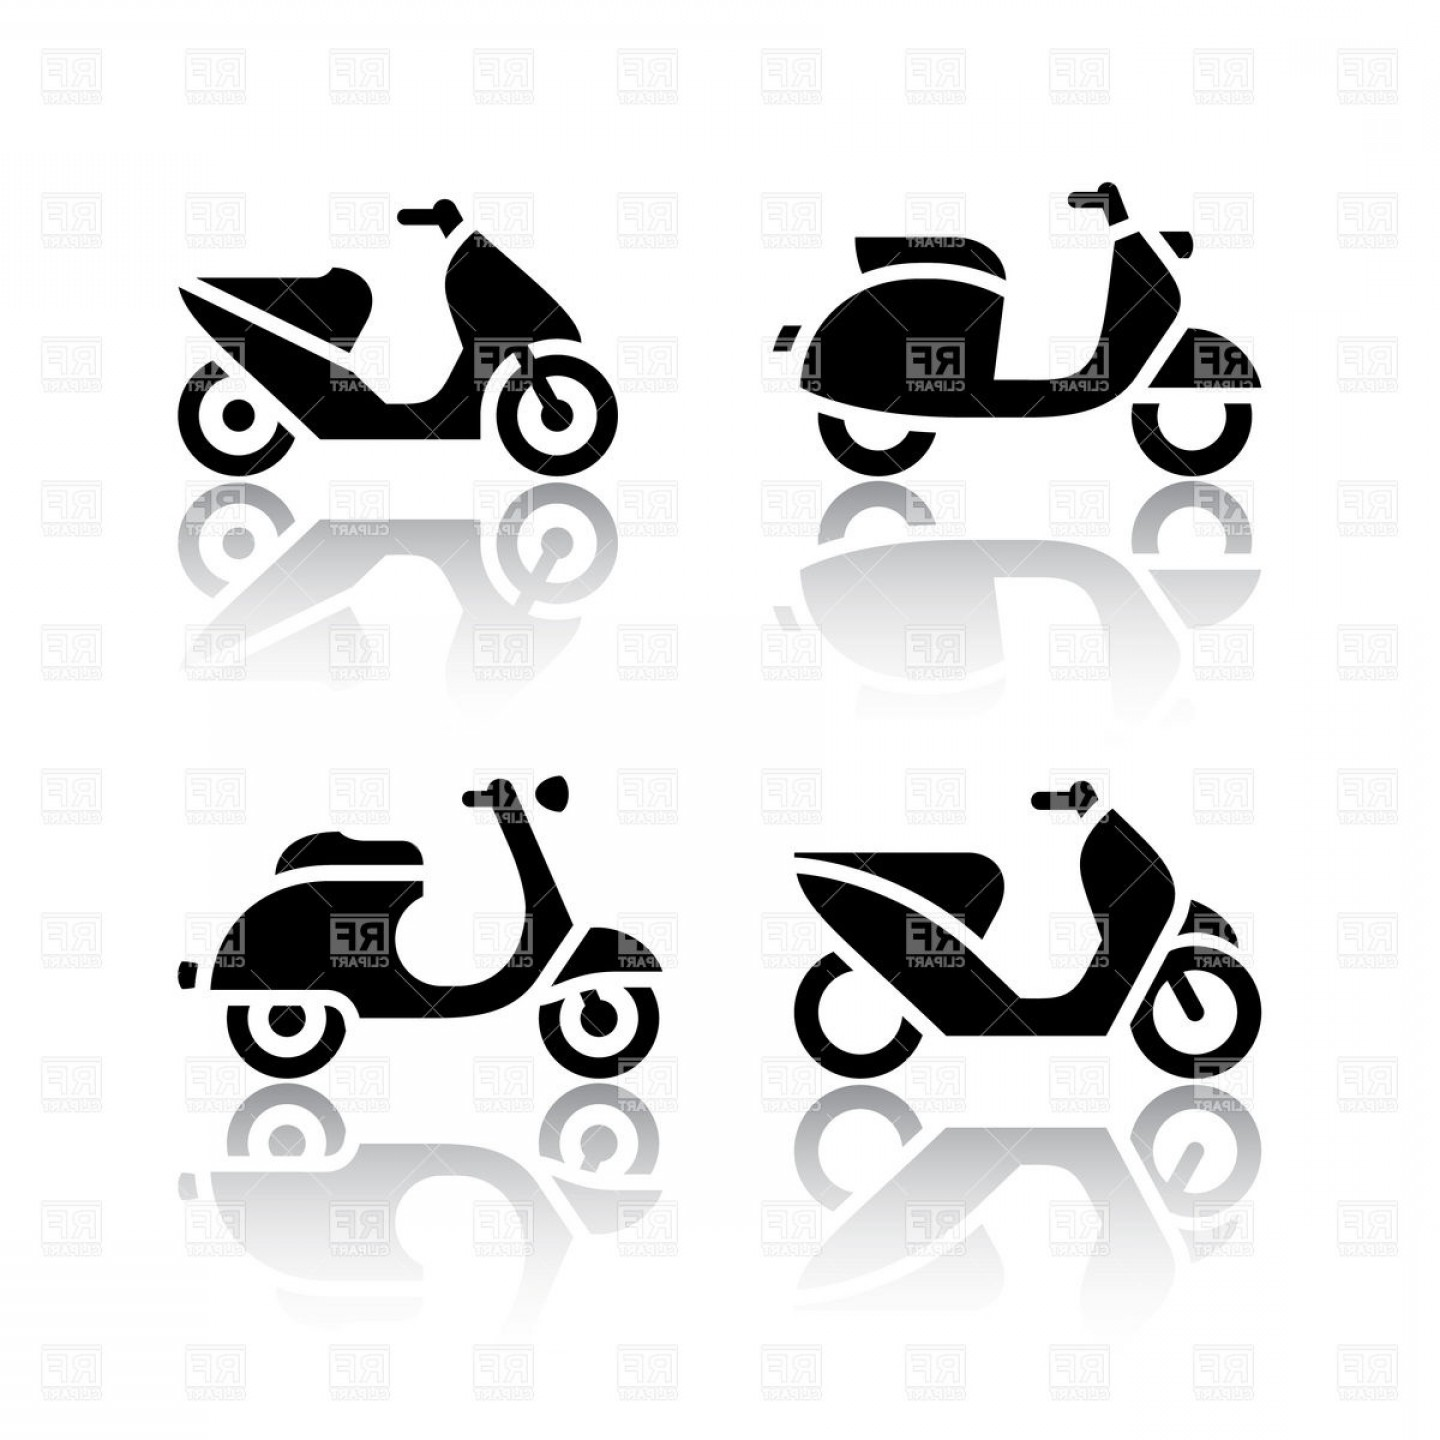 Motor Vector Graphics: Motorbike Motor Scooter And Moped Two Wheeled Transportation Icons Vector Clipart